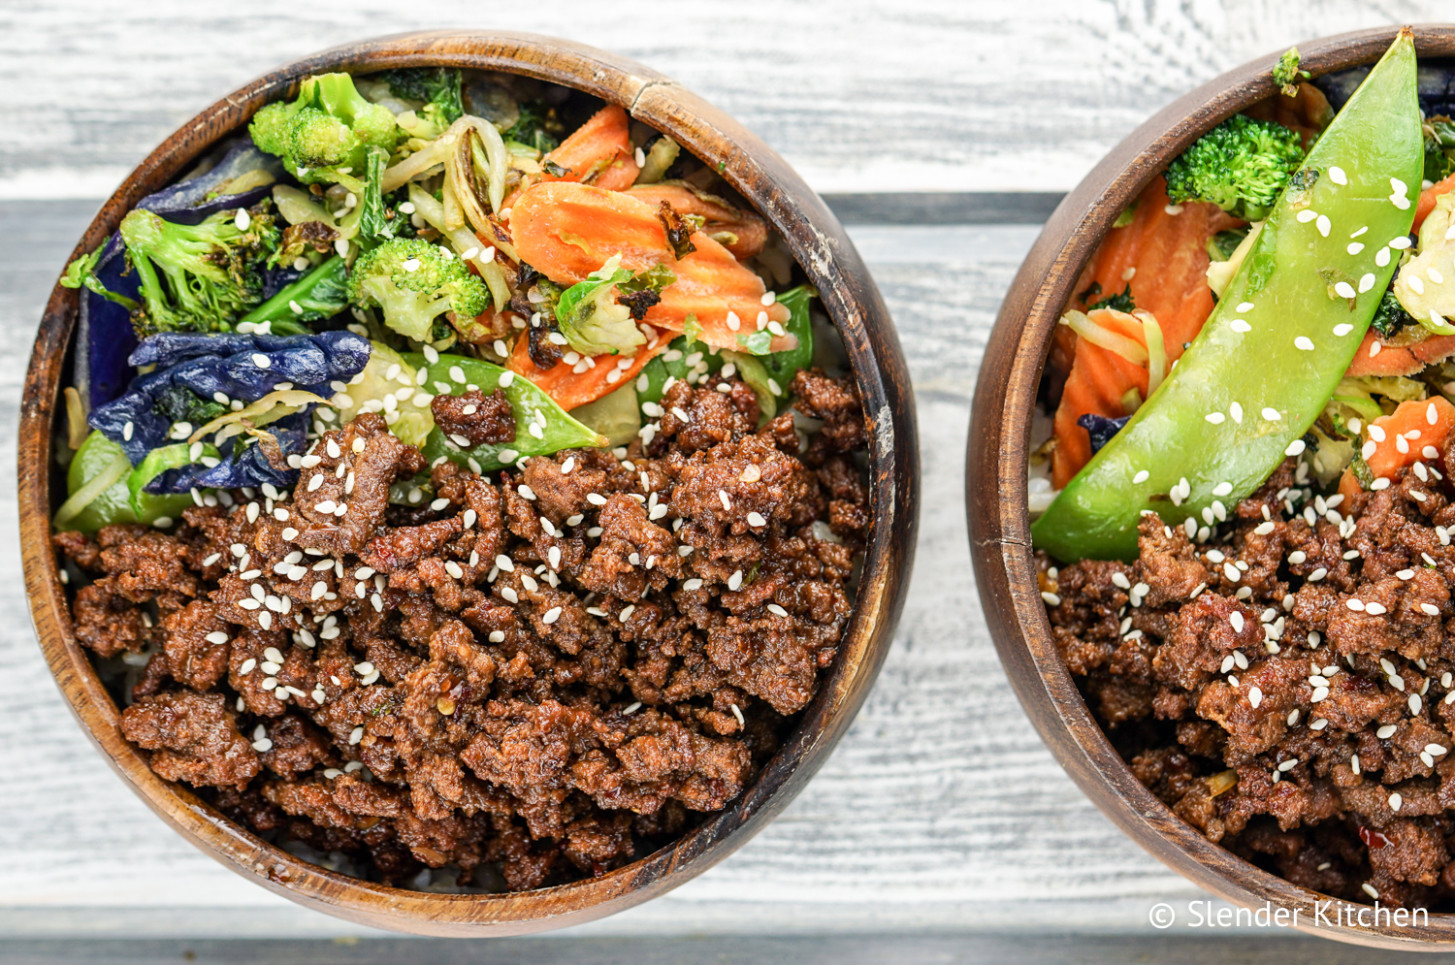 Healthy Korean Ground Beef with Vegetables - Slender Kitchen - recipes using ground beef healthy